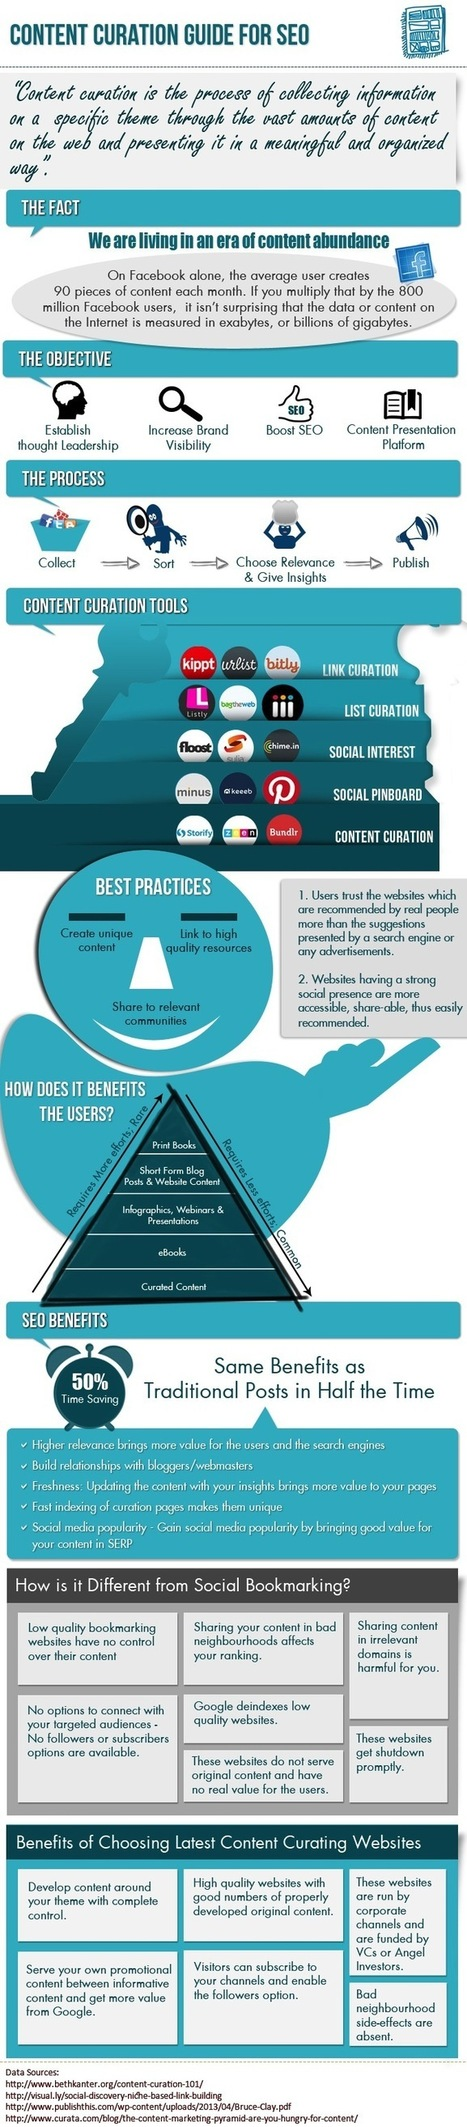 Content Curation Infographic: Process & Best Practices | MBSIB: My Social Grind | Scoop.it